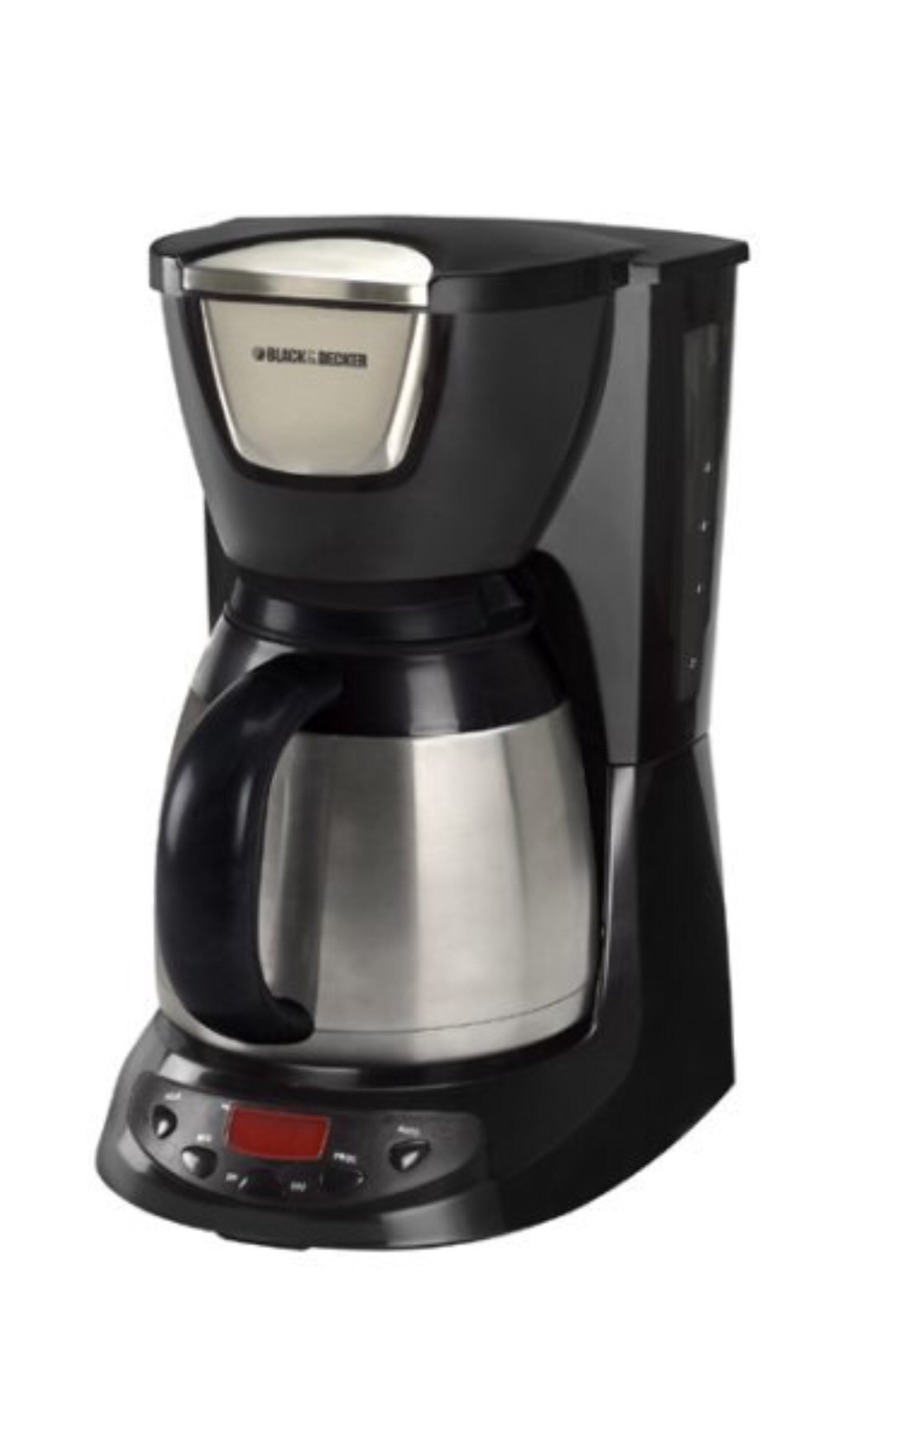 Brand new Black & Decker 8 Cup Programmable Coffee Maker for sale in San Leandro, CA - 5miles ...